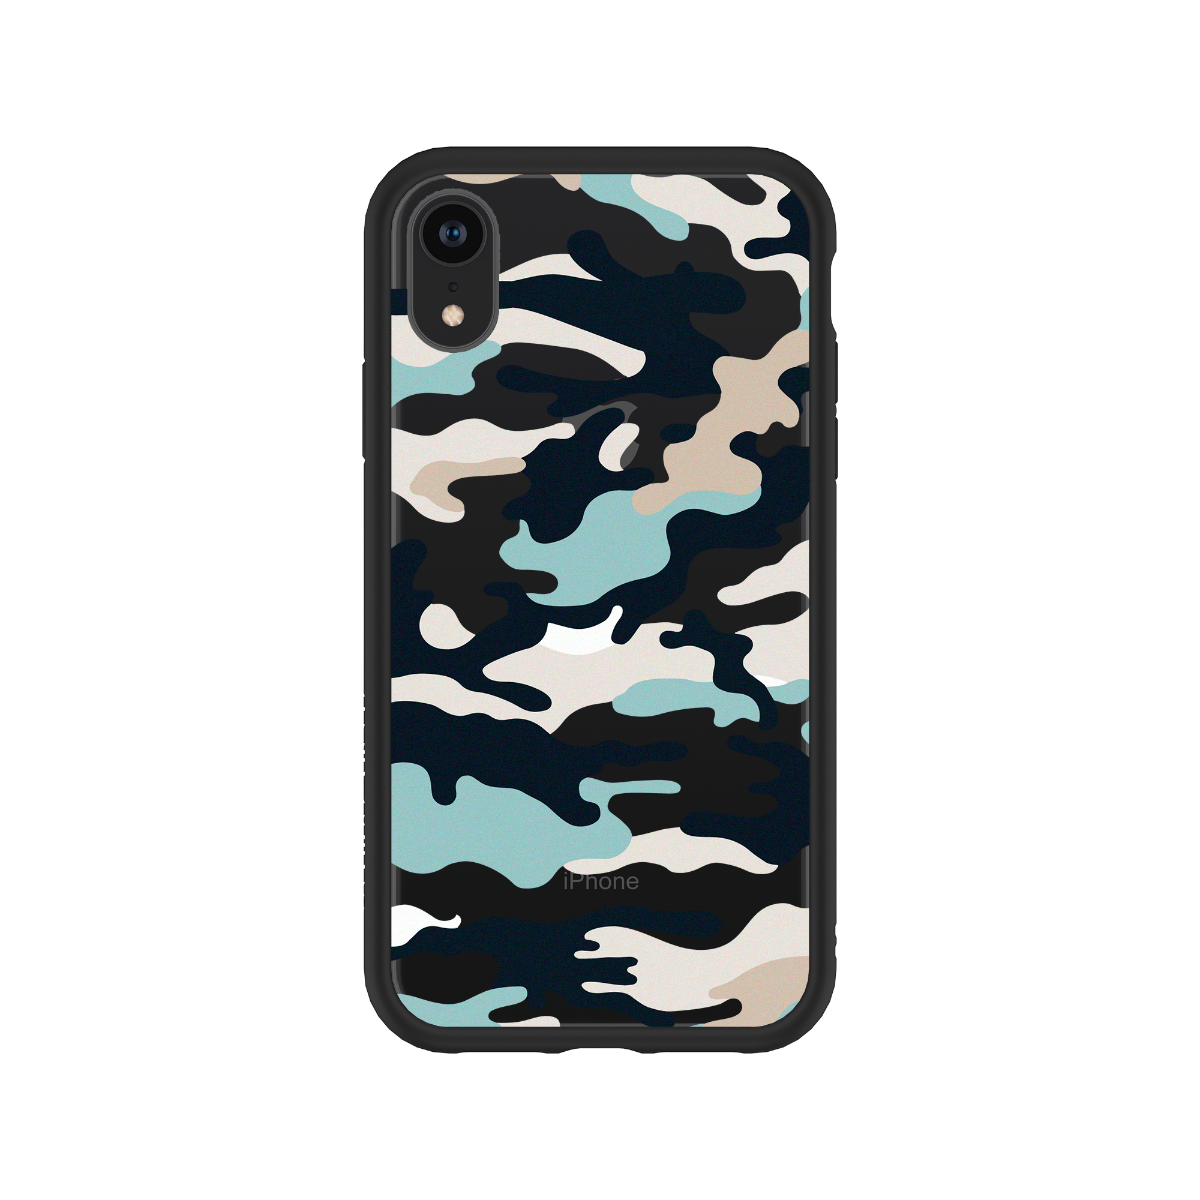 Pastel Camo Mod Nx Backplate Iphone Xr Rhinoshield Wallet Phone Case Iphone Phone Cases Apple Phone Case